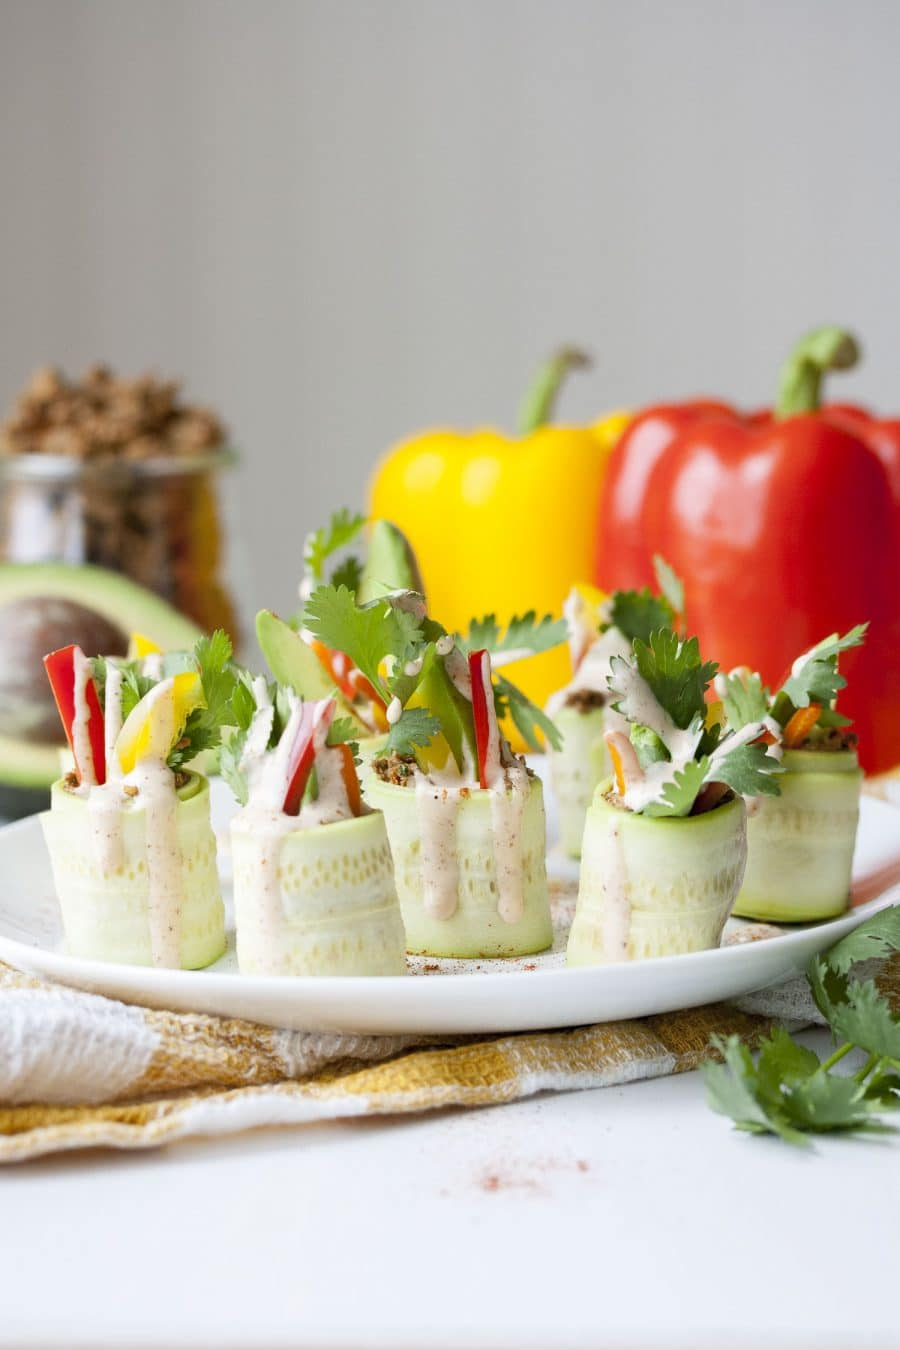 Zucchini roll ups on a plate.